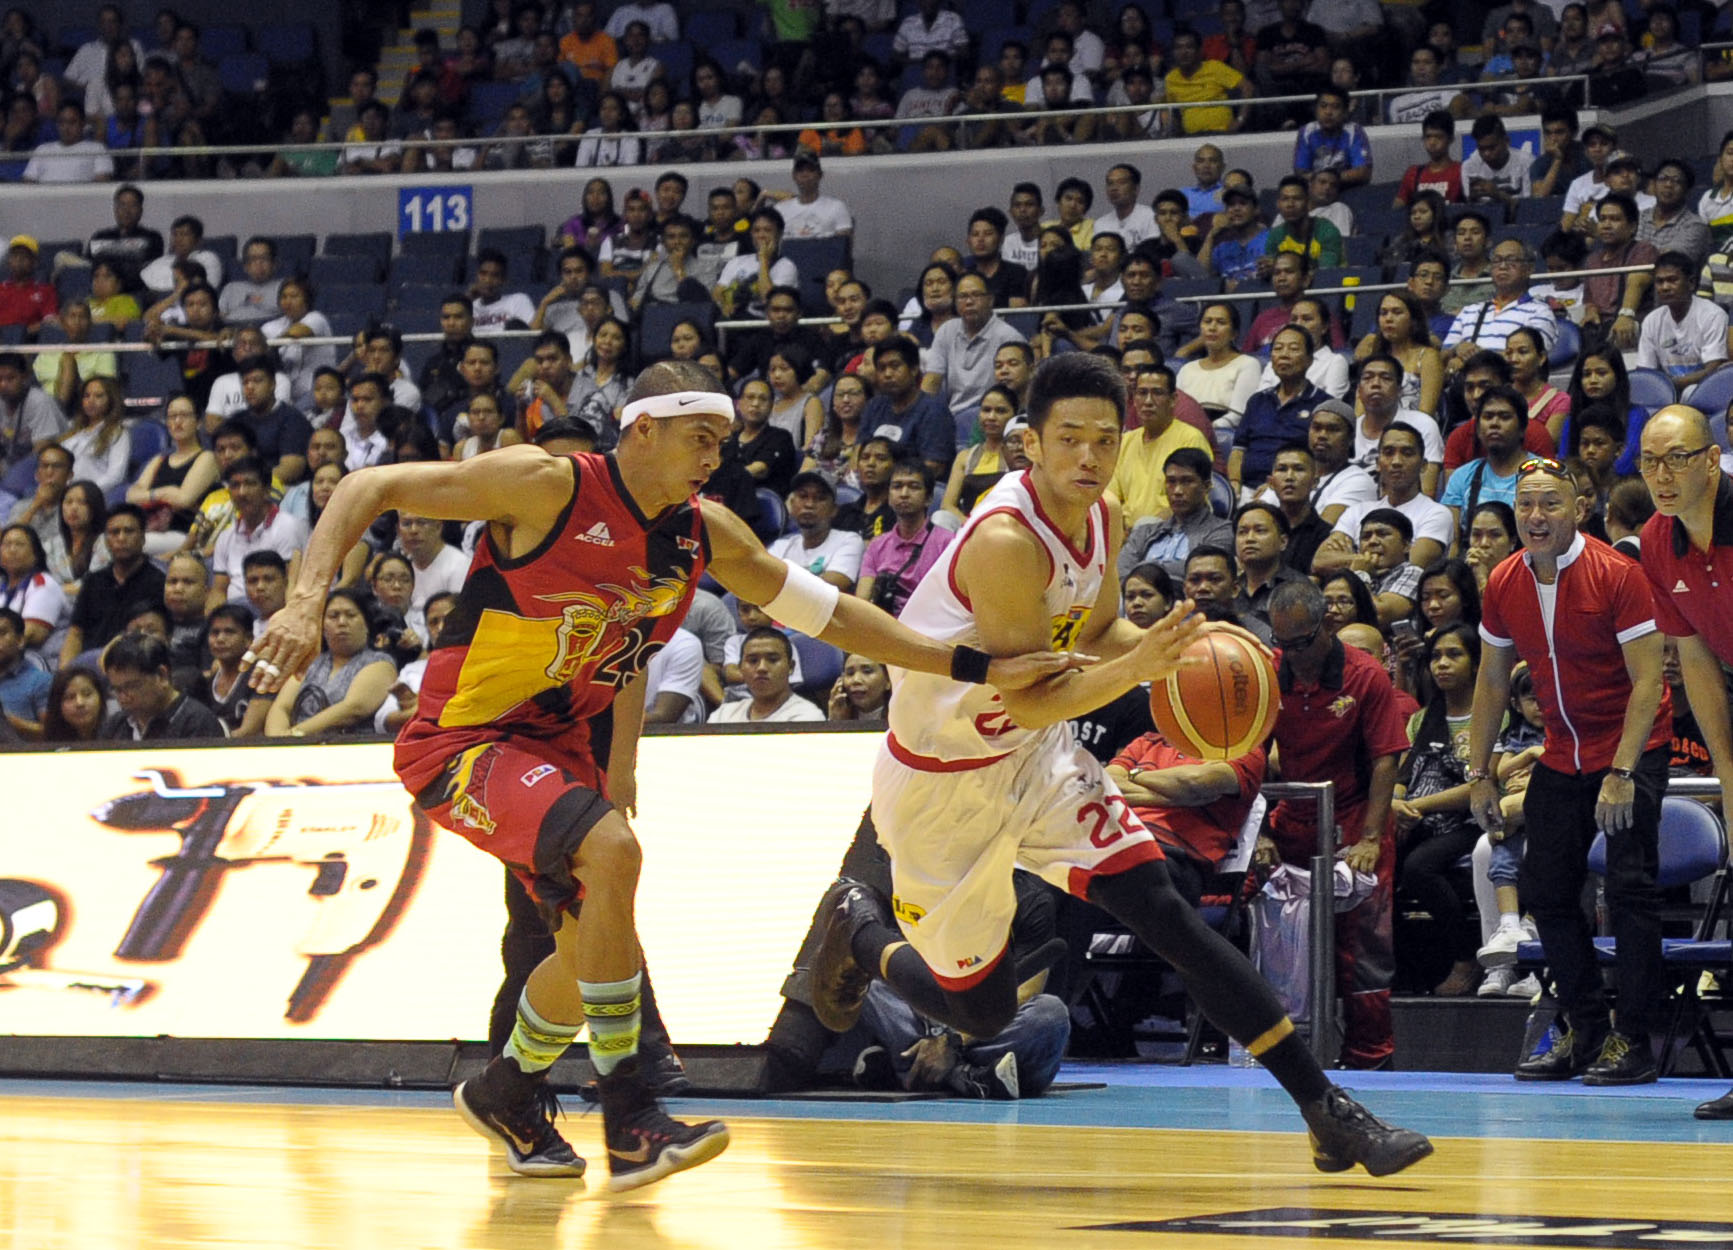 PBA - Star Hotshots vs San Miguel Beer - April 18, 2016 - KC - 1